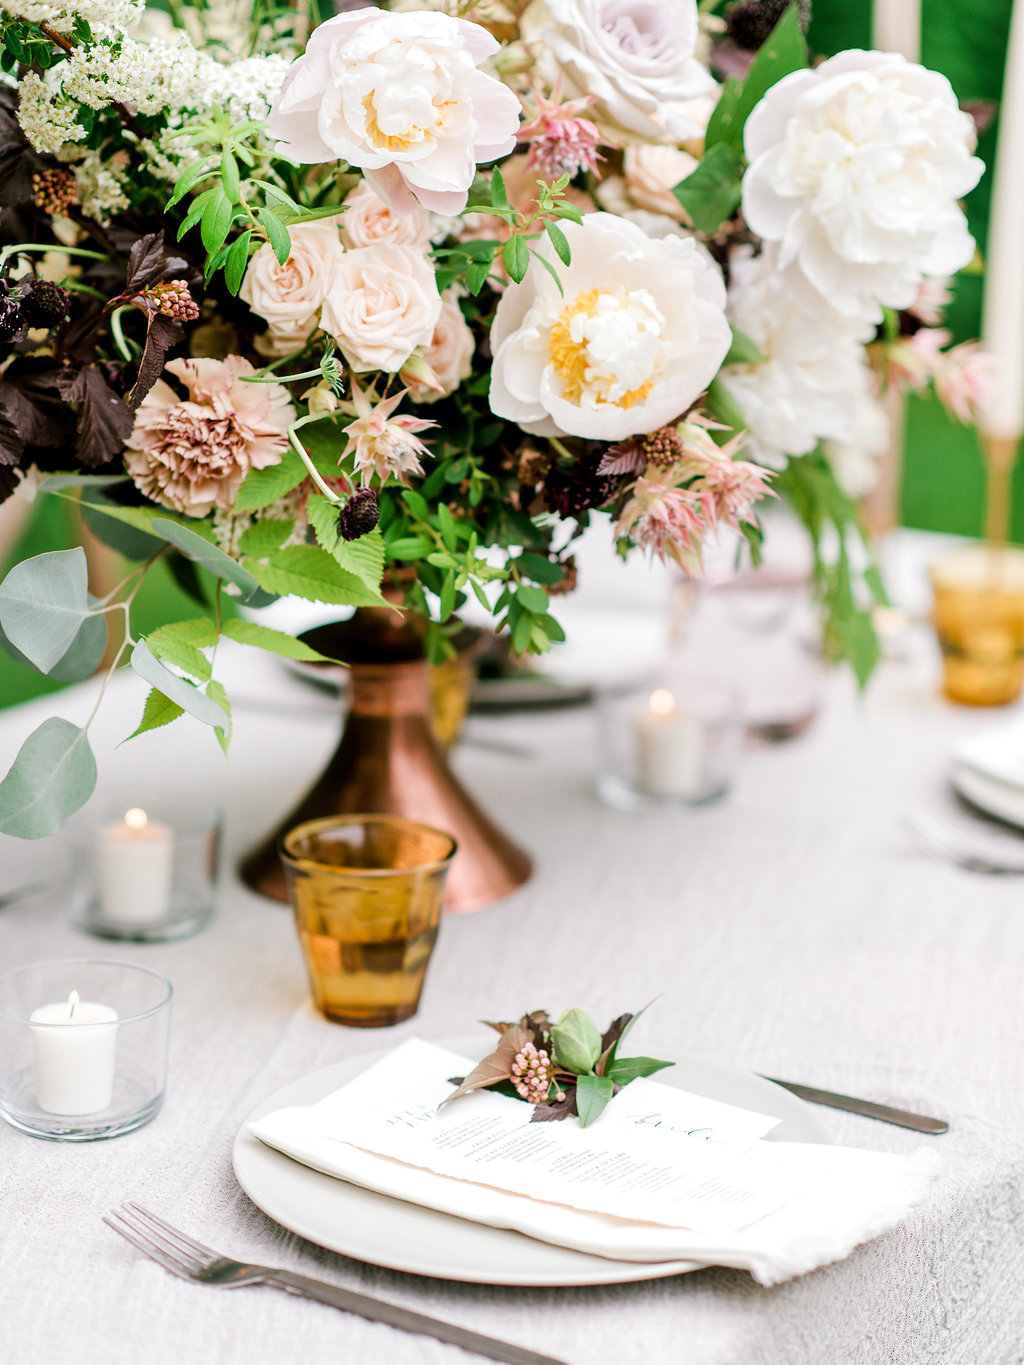 Garden Inspiration - FEATURED ON GREY LIKES WEDDINGS / SPRING 2018Design + Styling: Paperdoll + Photography: Justine Milton + Florals: Fern & Frond + Stationery: Art + Alexander + Dress: Tatyana Merenyuk via Pearl & Dot + Hair and Makeup: SimplyME Canmore + Venue: Deane House